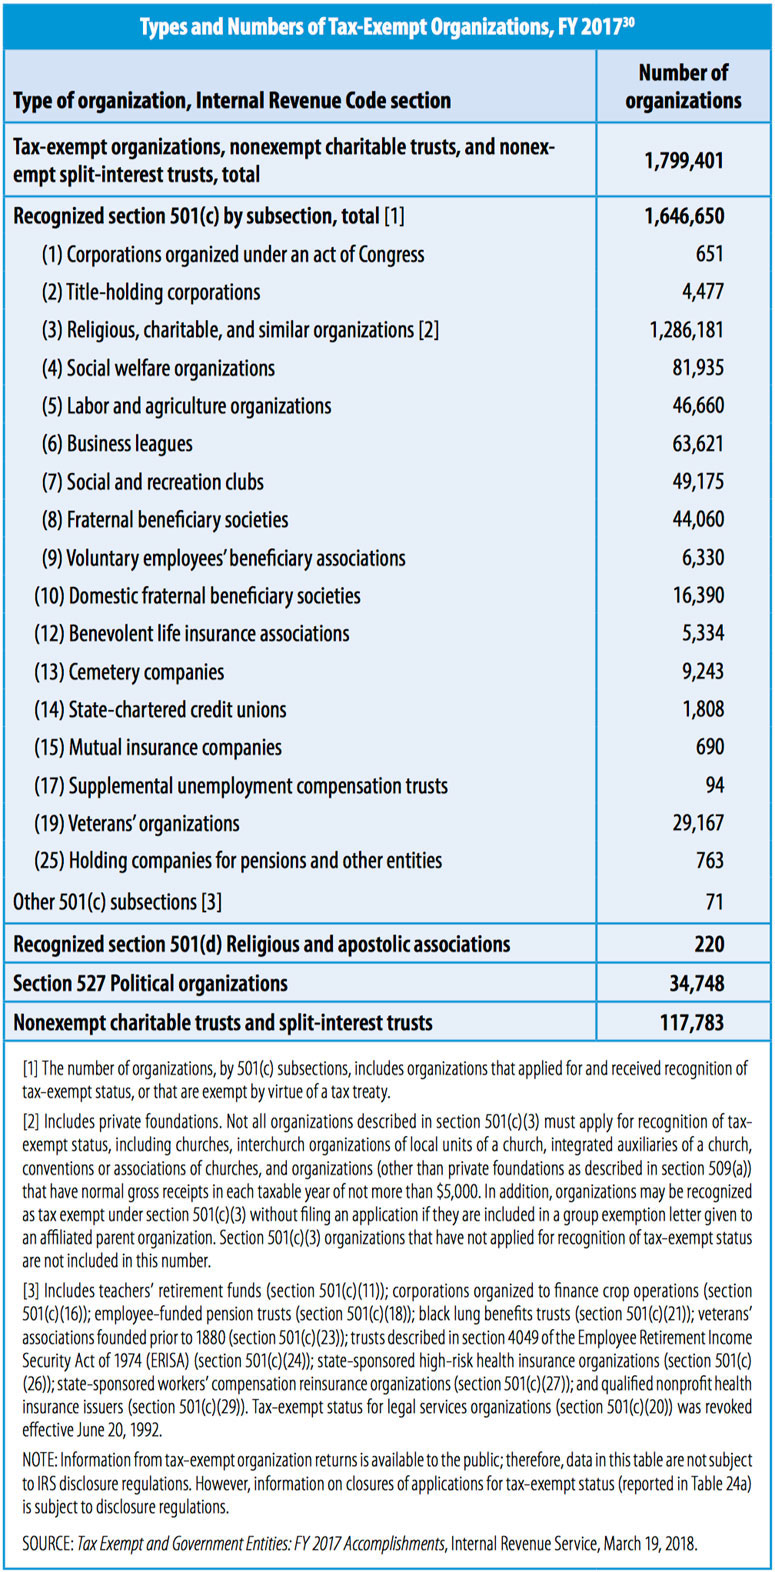 Types and Numbers of Tax-Exempt Organizations Fiscal Year 2017